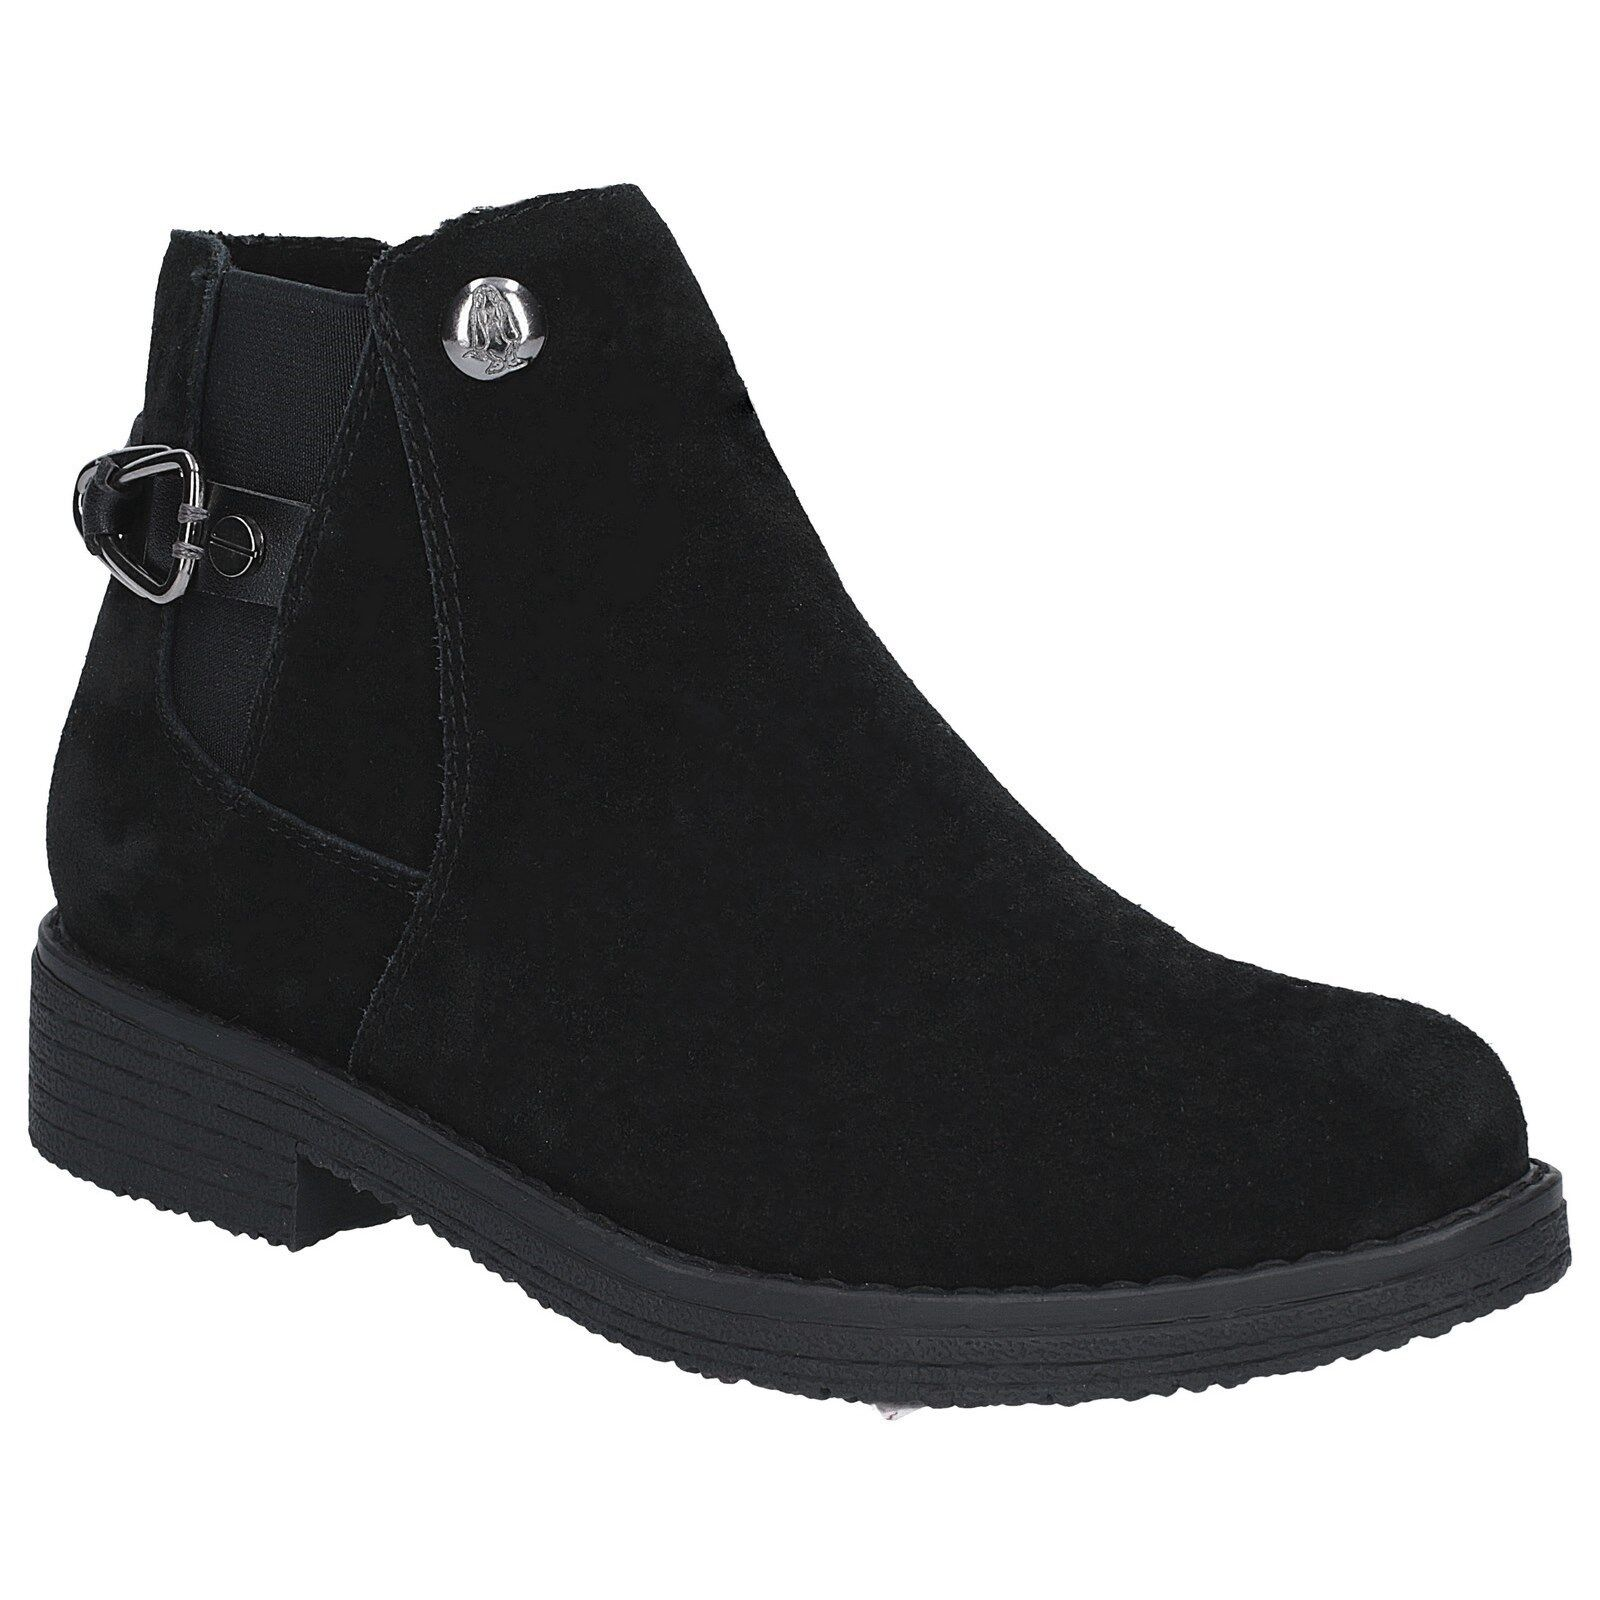 Hush Puppies Alaska Chelsea Boots Womens Water Resistant Suede Faux Fur Ankle